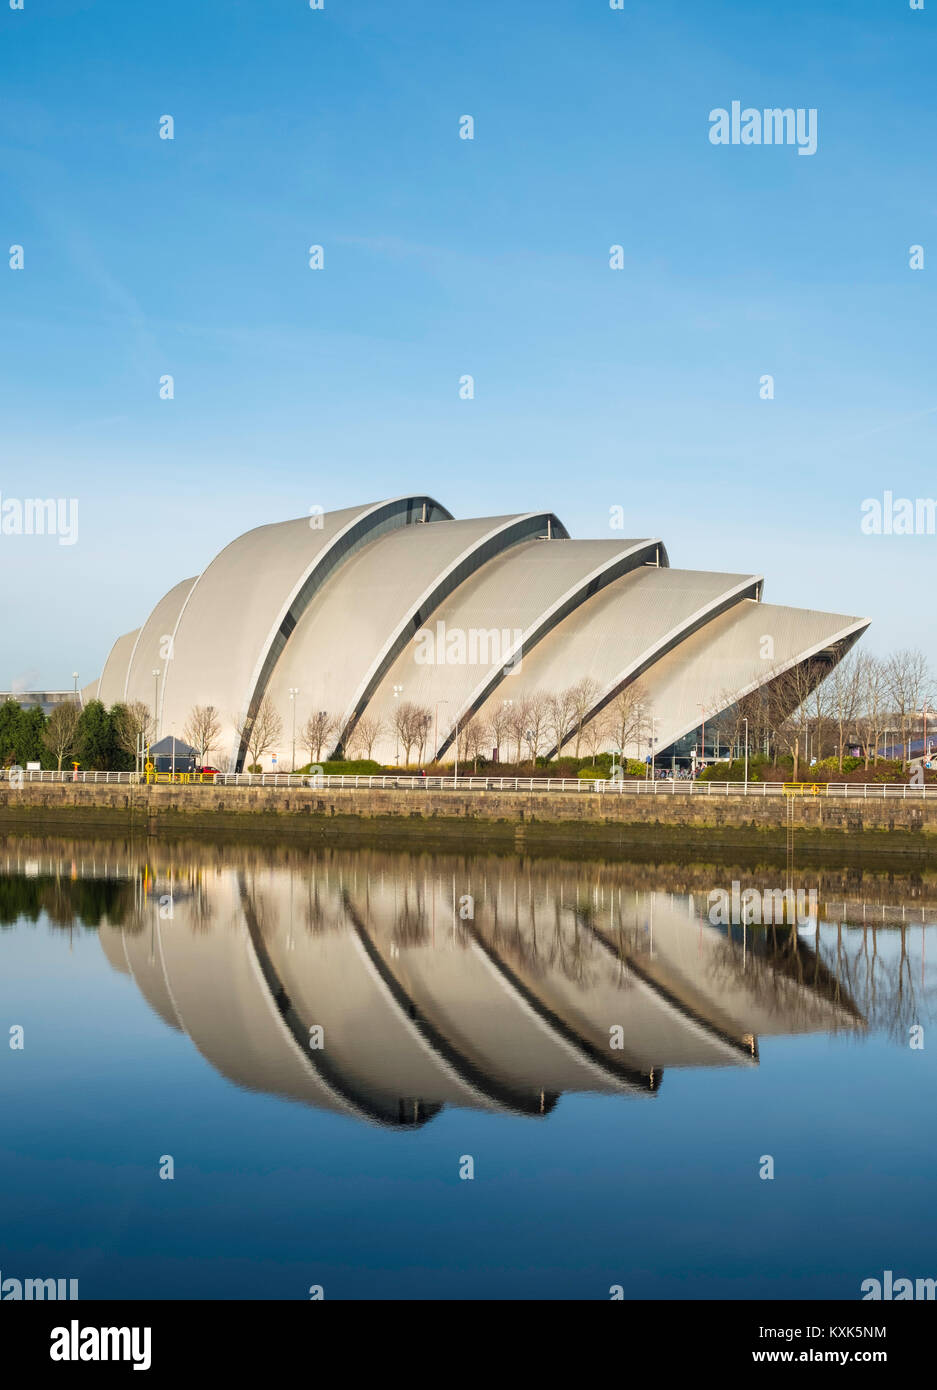 View of SEC Armadillo centre beside River Clyde in Glasgow , United Kingdom - Stock Image